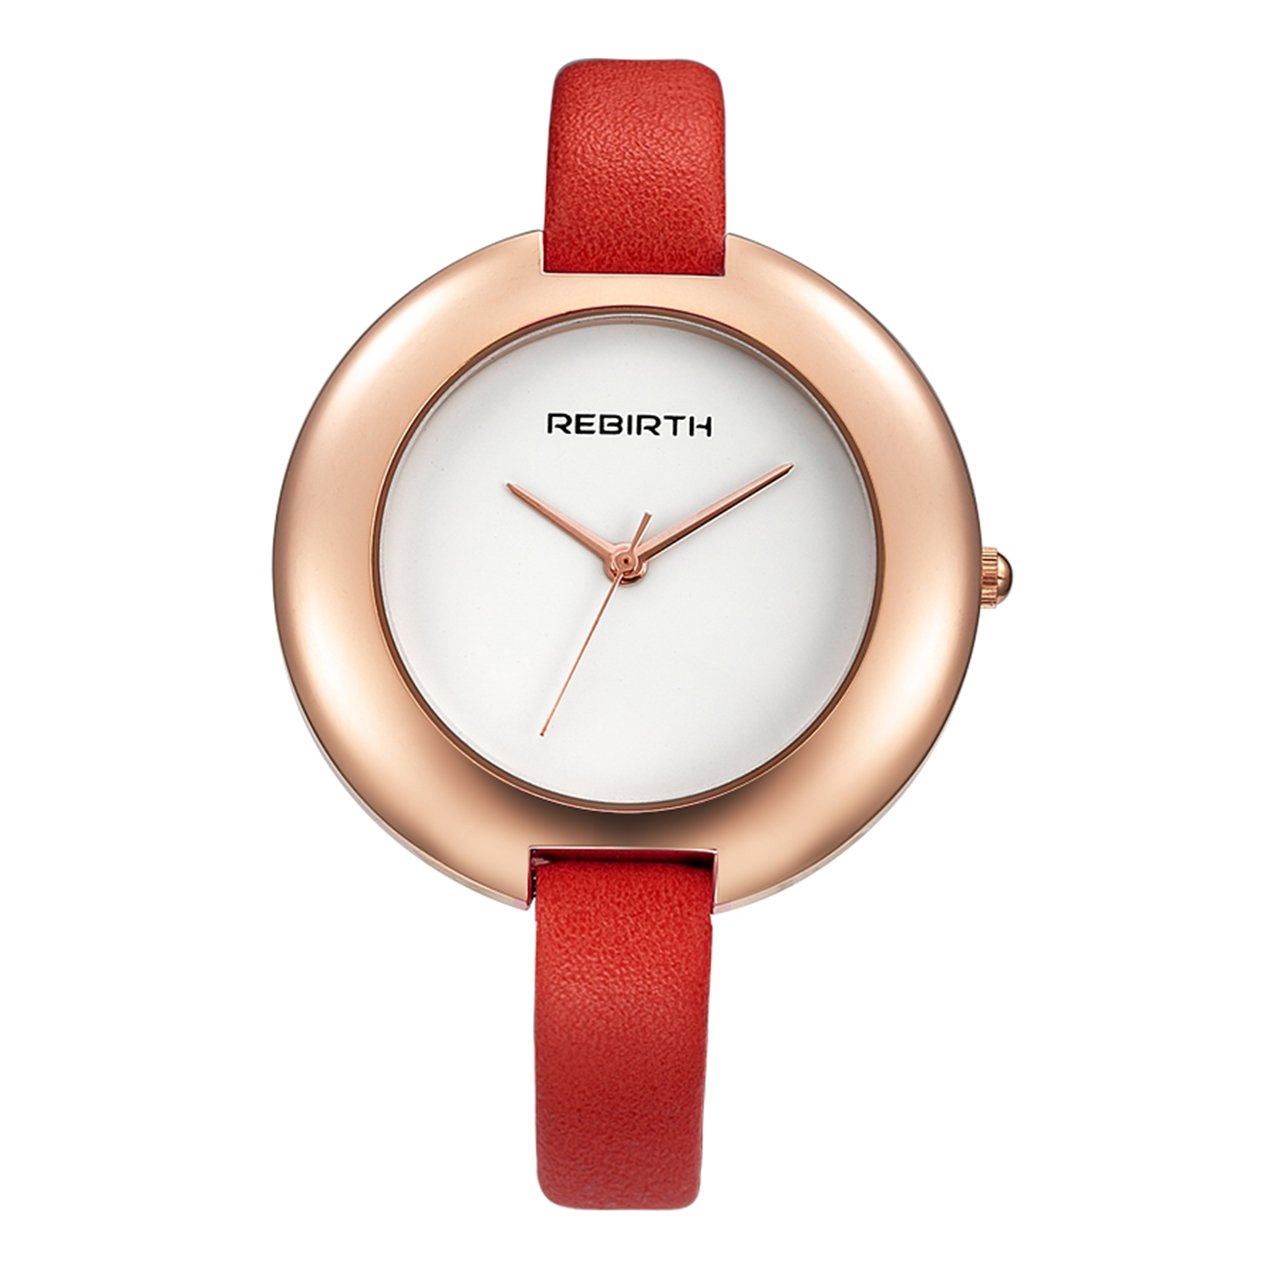 Top Plaza Ladies Red Fashion Big Face Watch Analog Quartz Thin PU Leather Blank Space Dial Daily Waterproof by Top Plaza (Image #1)